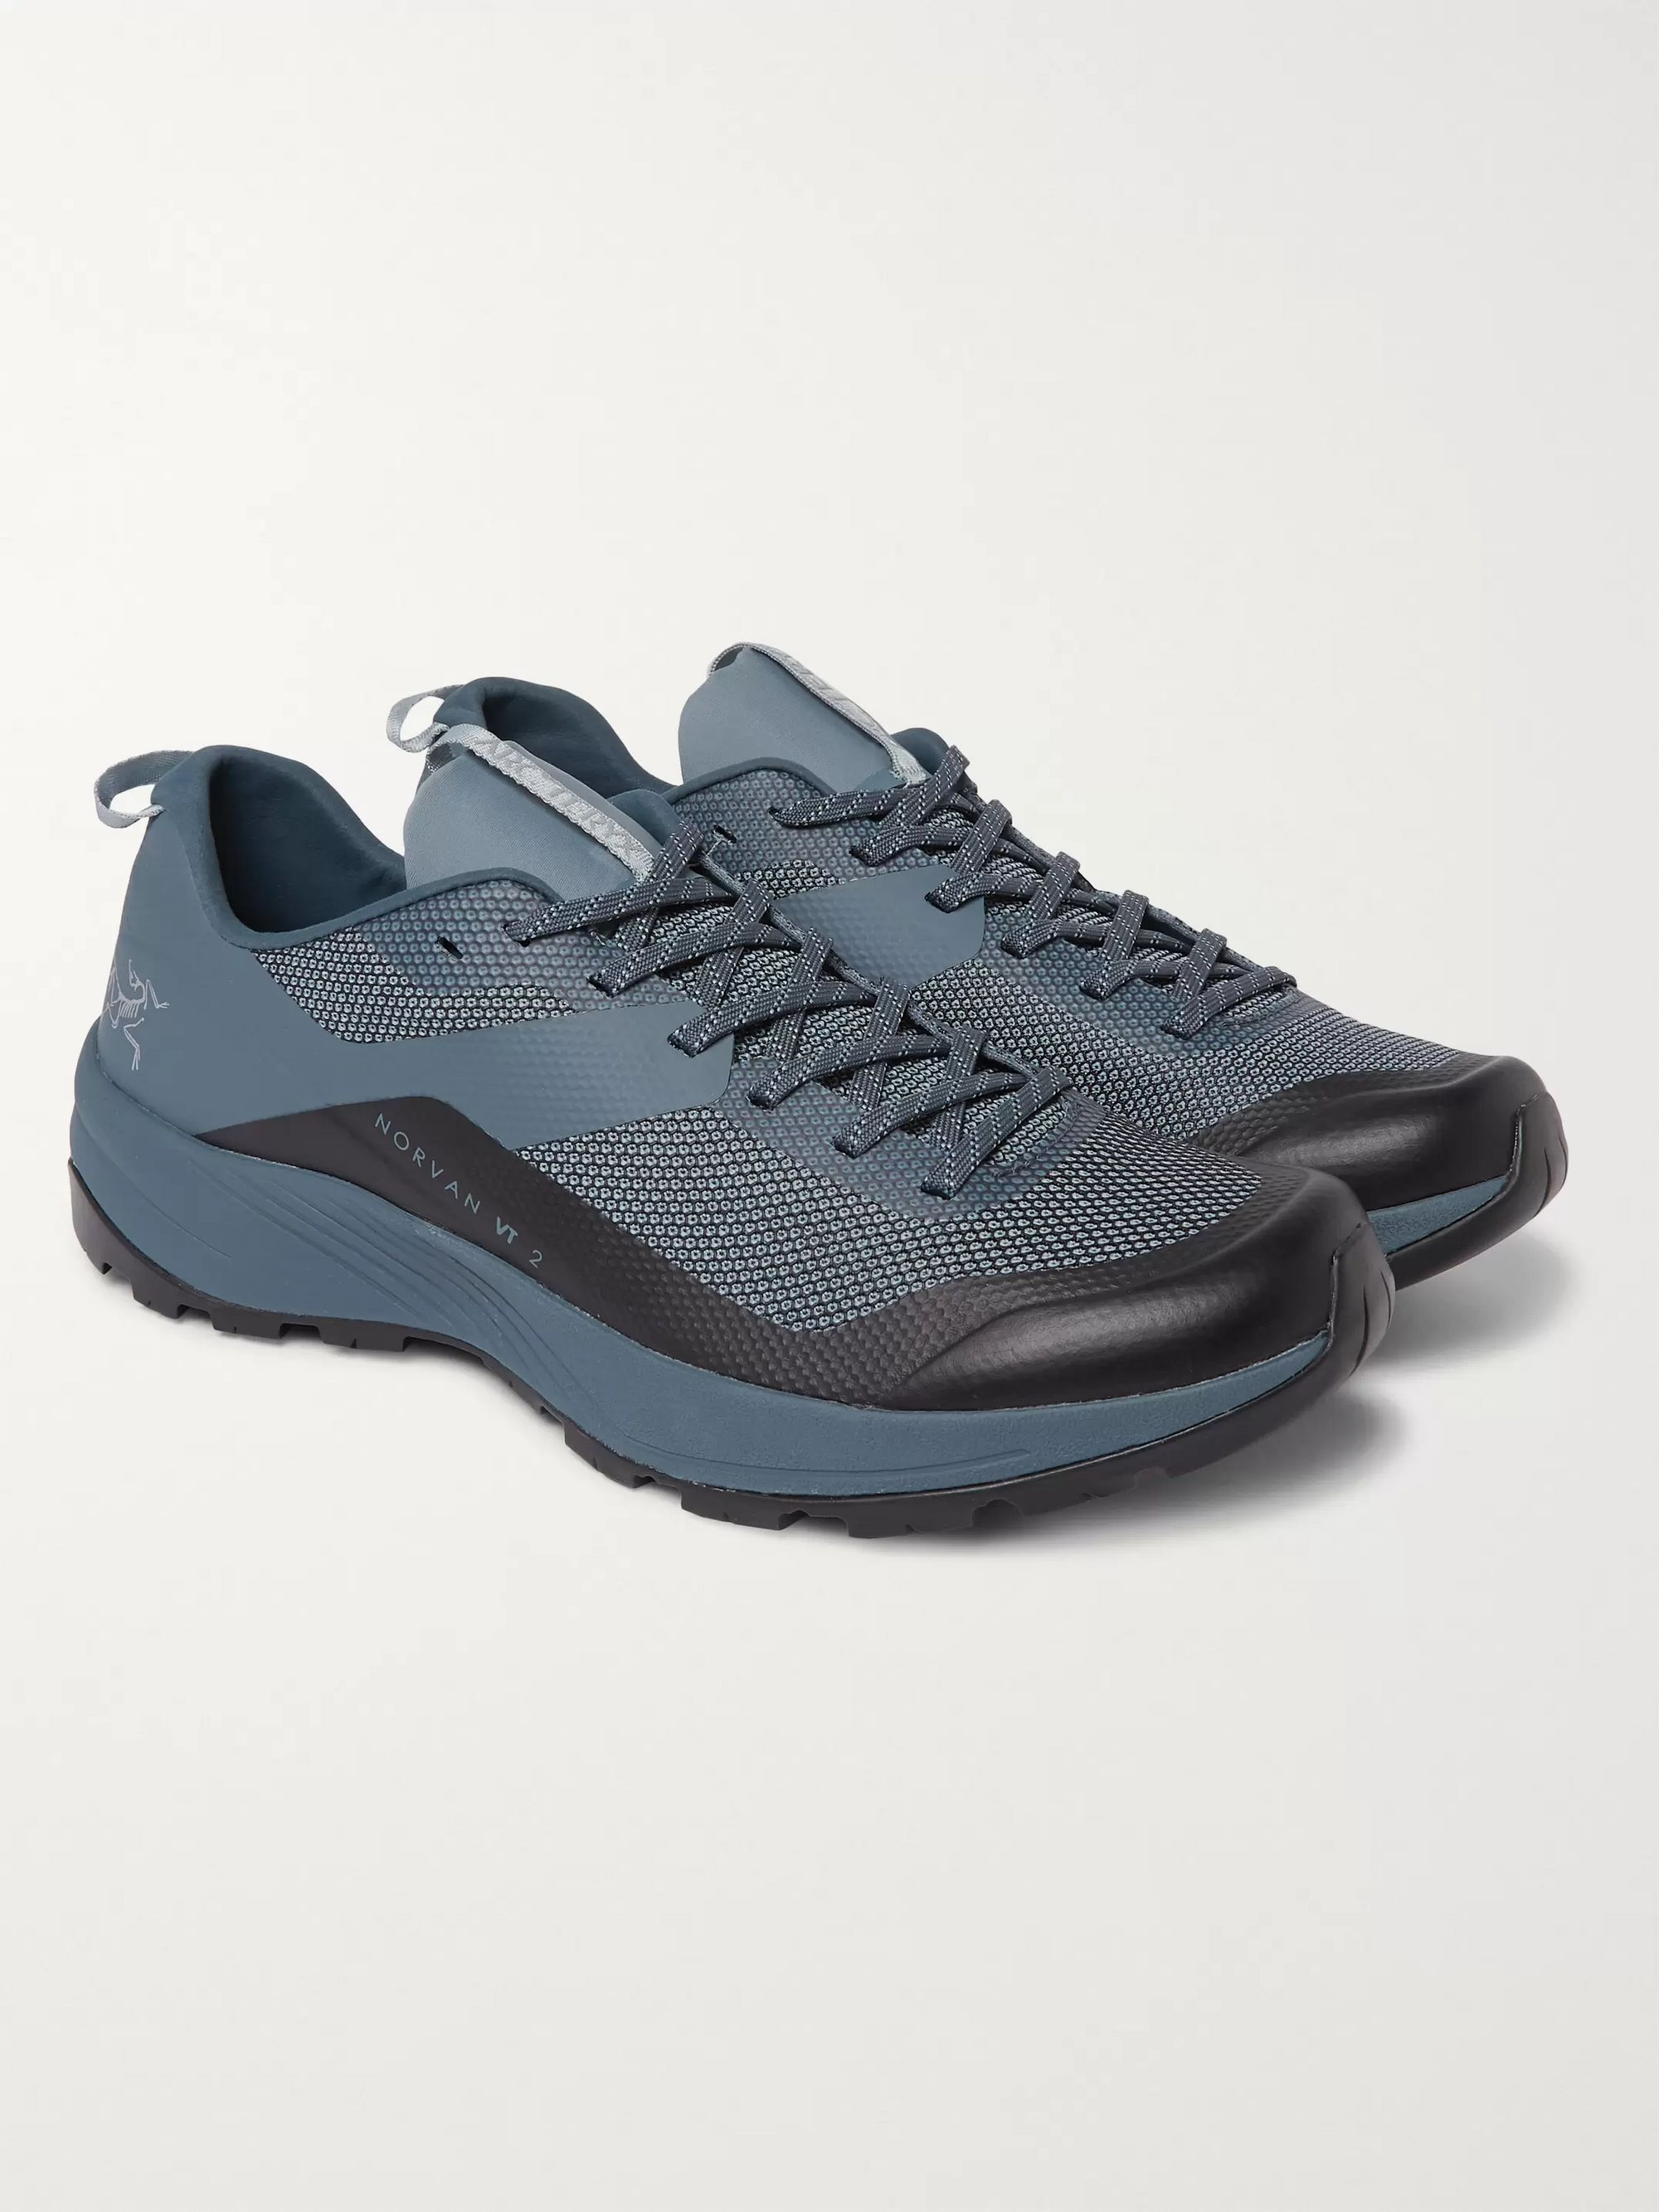 Arc'teryx Norvan VT 2 Mesh and Rubber Running Sneakers